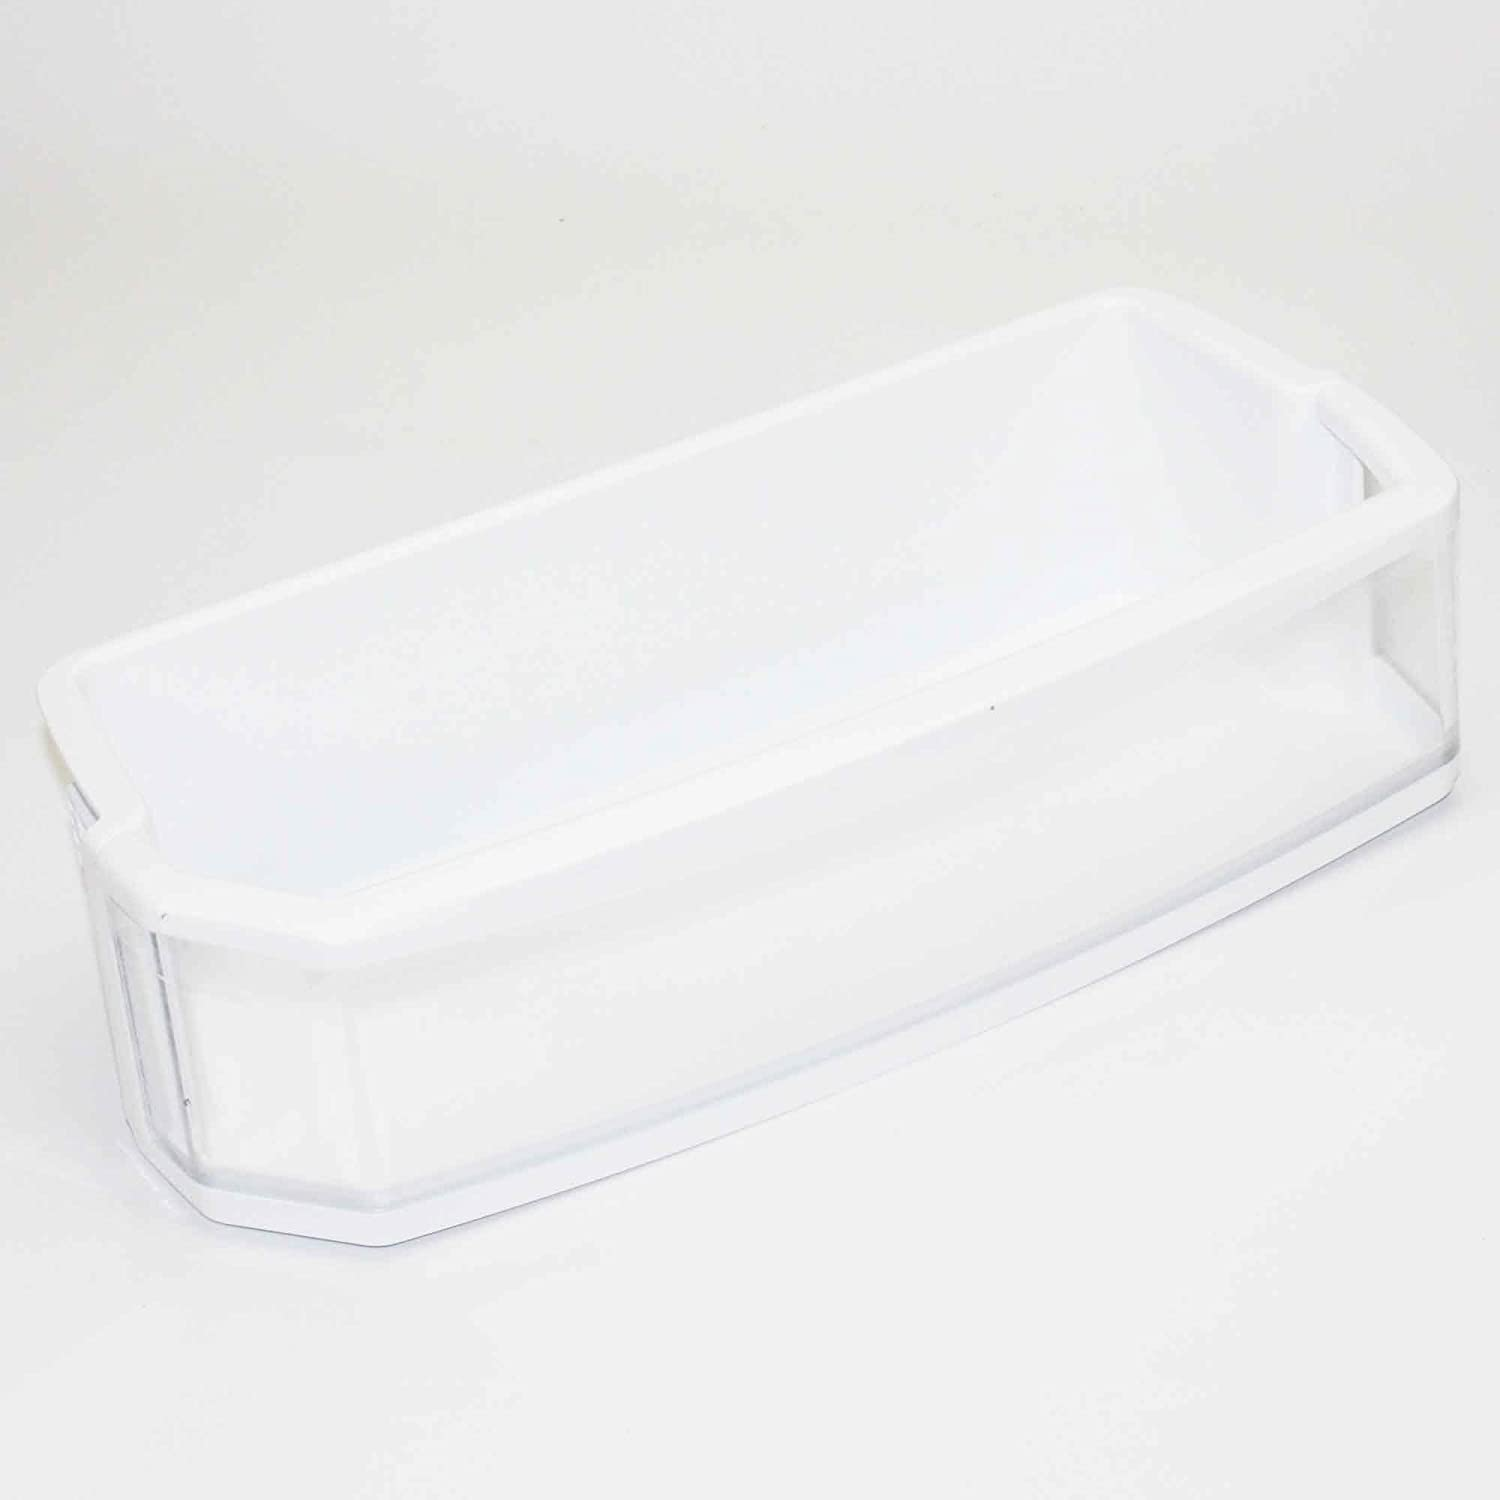 LG Basket Assembly,Door AAP72909212 by LG